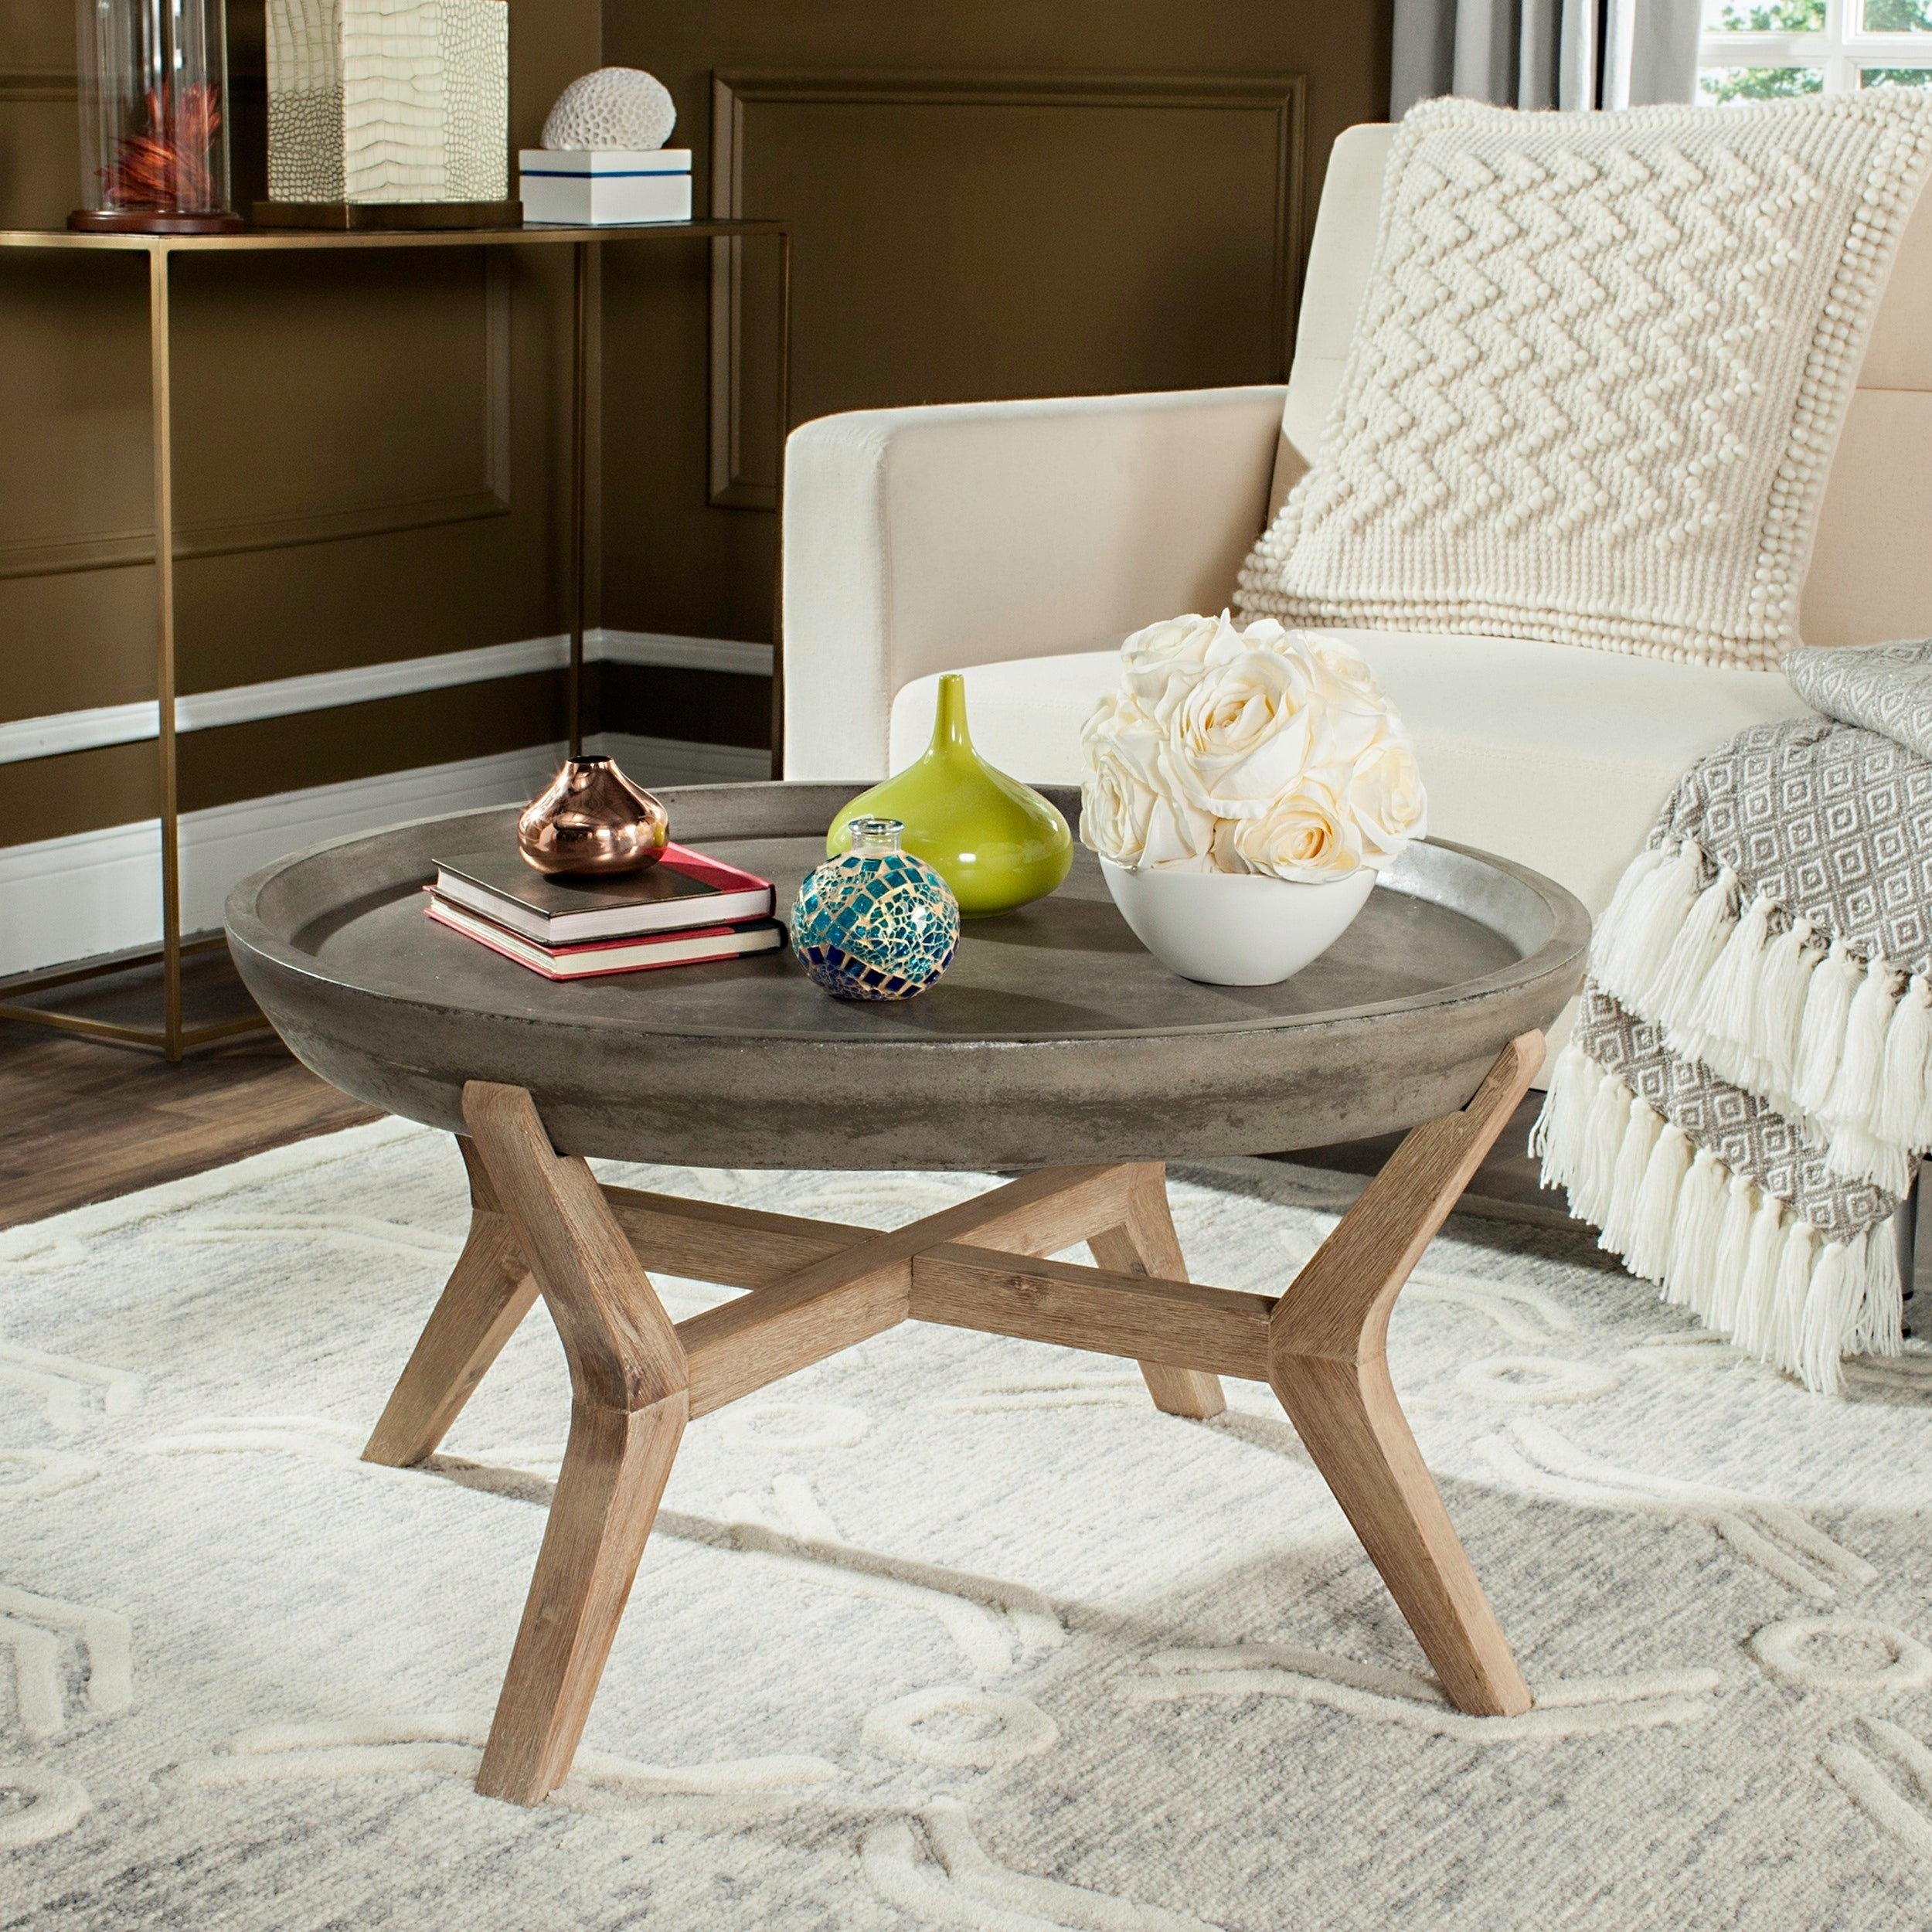 Designer Living Room Furniture Coffee Table for Indoor and Outdoor Black